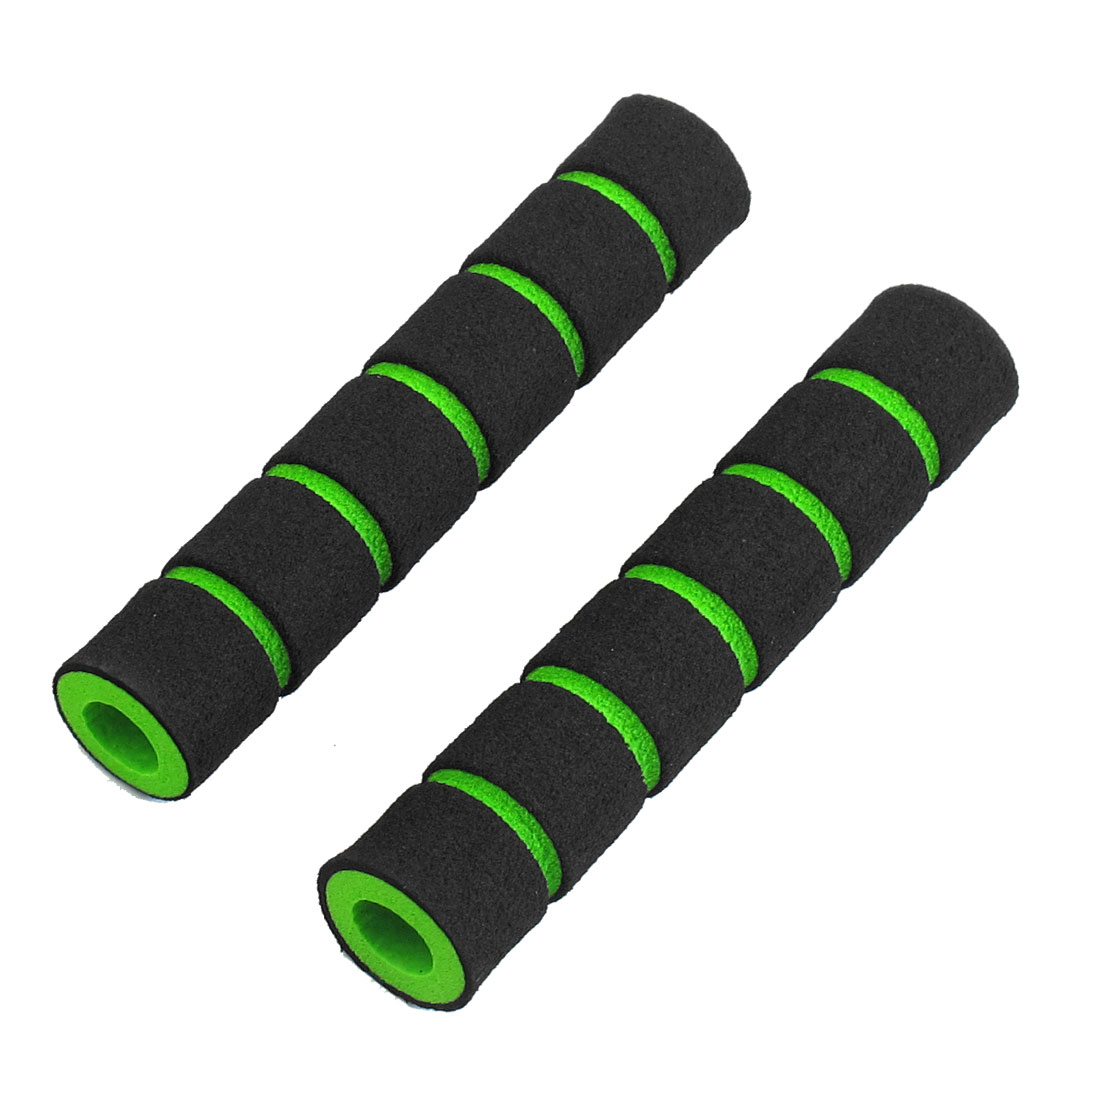 "2 Pcs 0.35"" Dia Striped Nonslip Cycling Bike Handlebar Grip Cover Black Green"